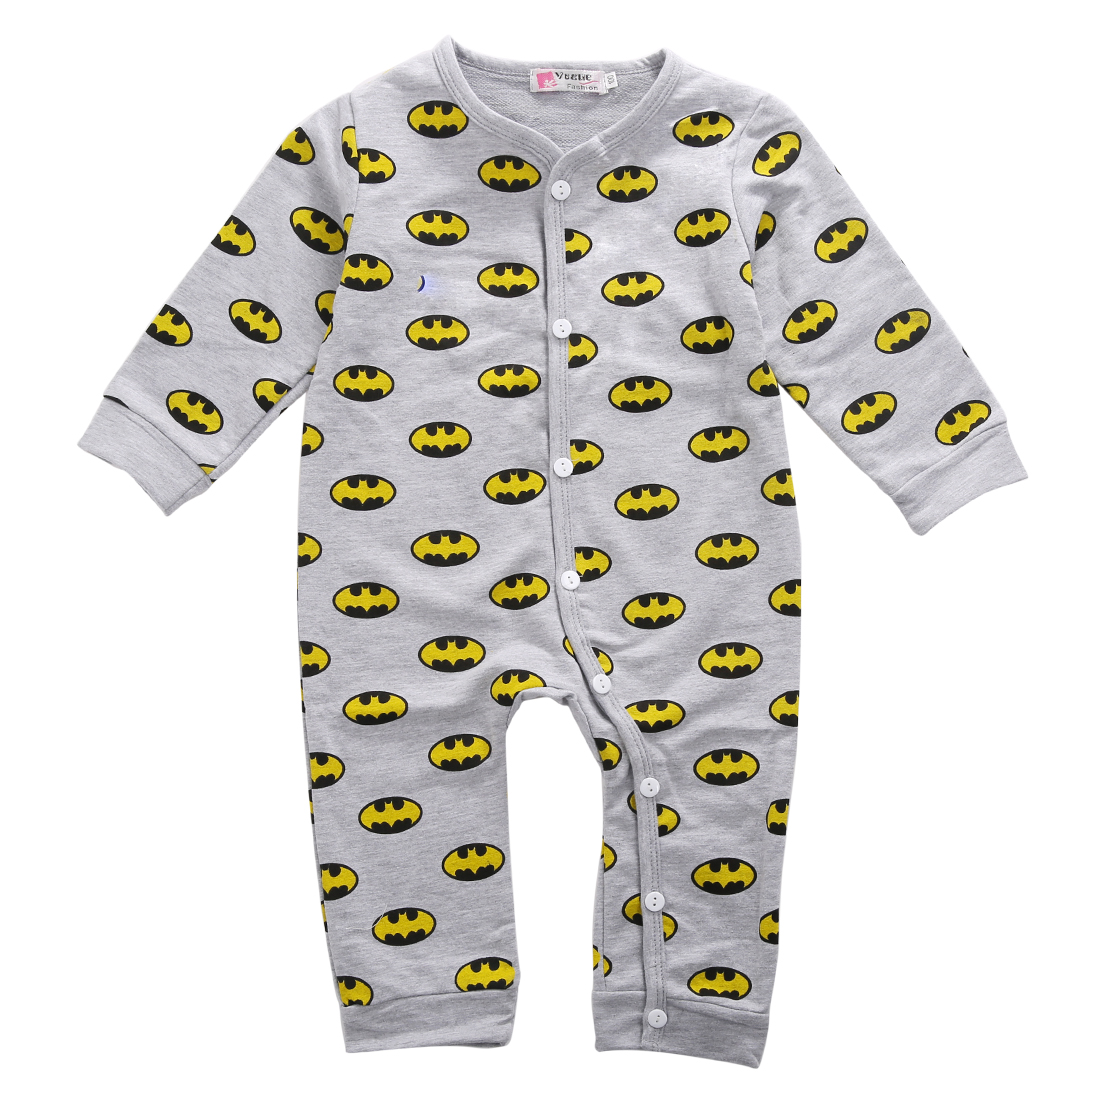 Toddler Infant Baby Boys Girls Sunflower Jumpsuit Long Sleeve Button Pajamas Romper for Sleep Play